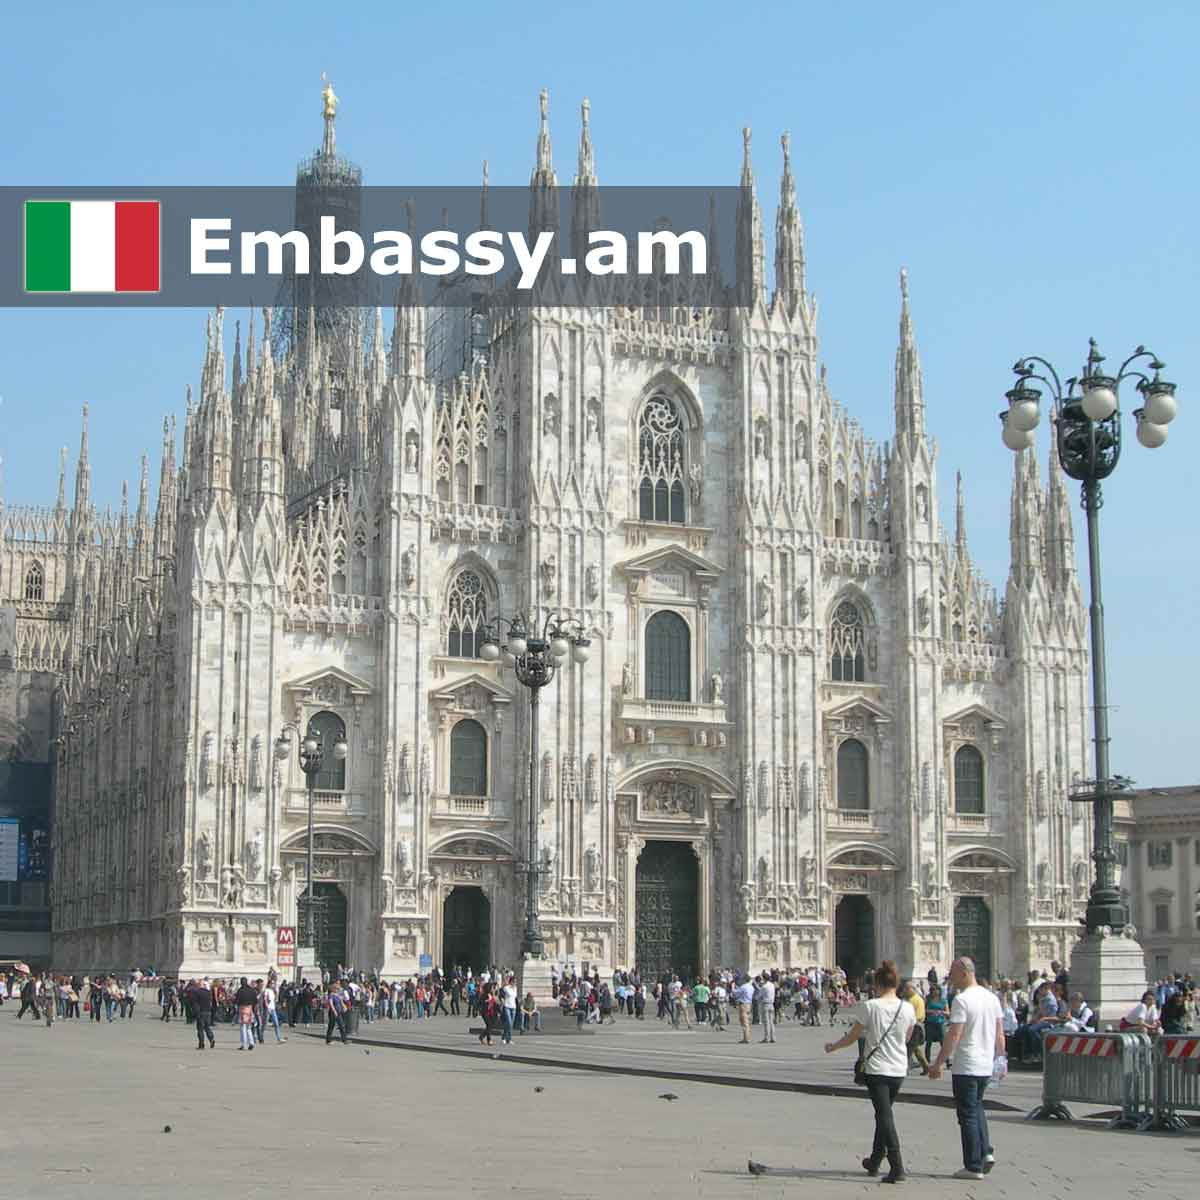 Milan - Hotels in Italy - Embassy.am